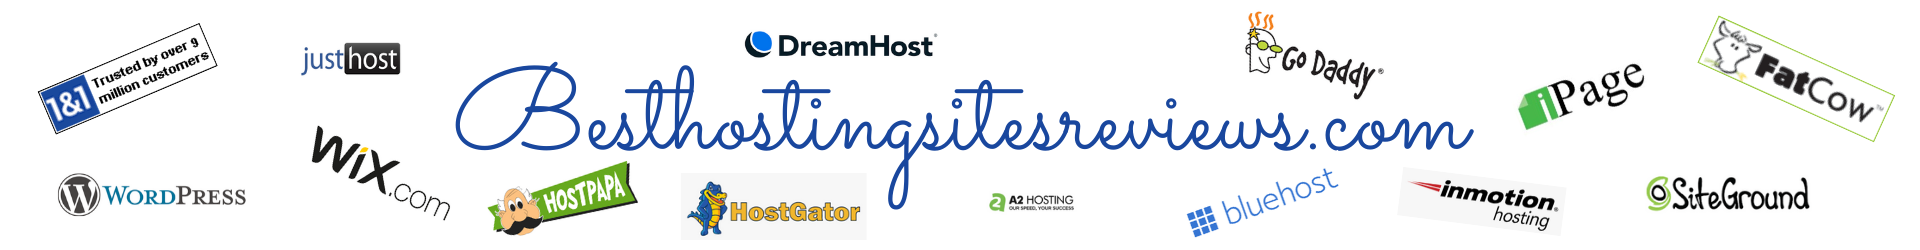 best hosting company